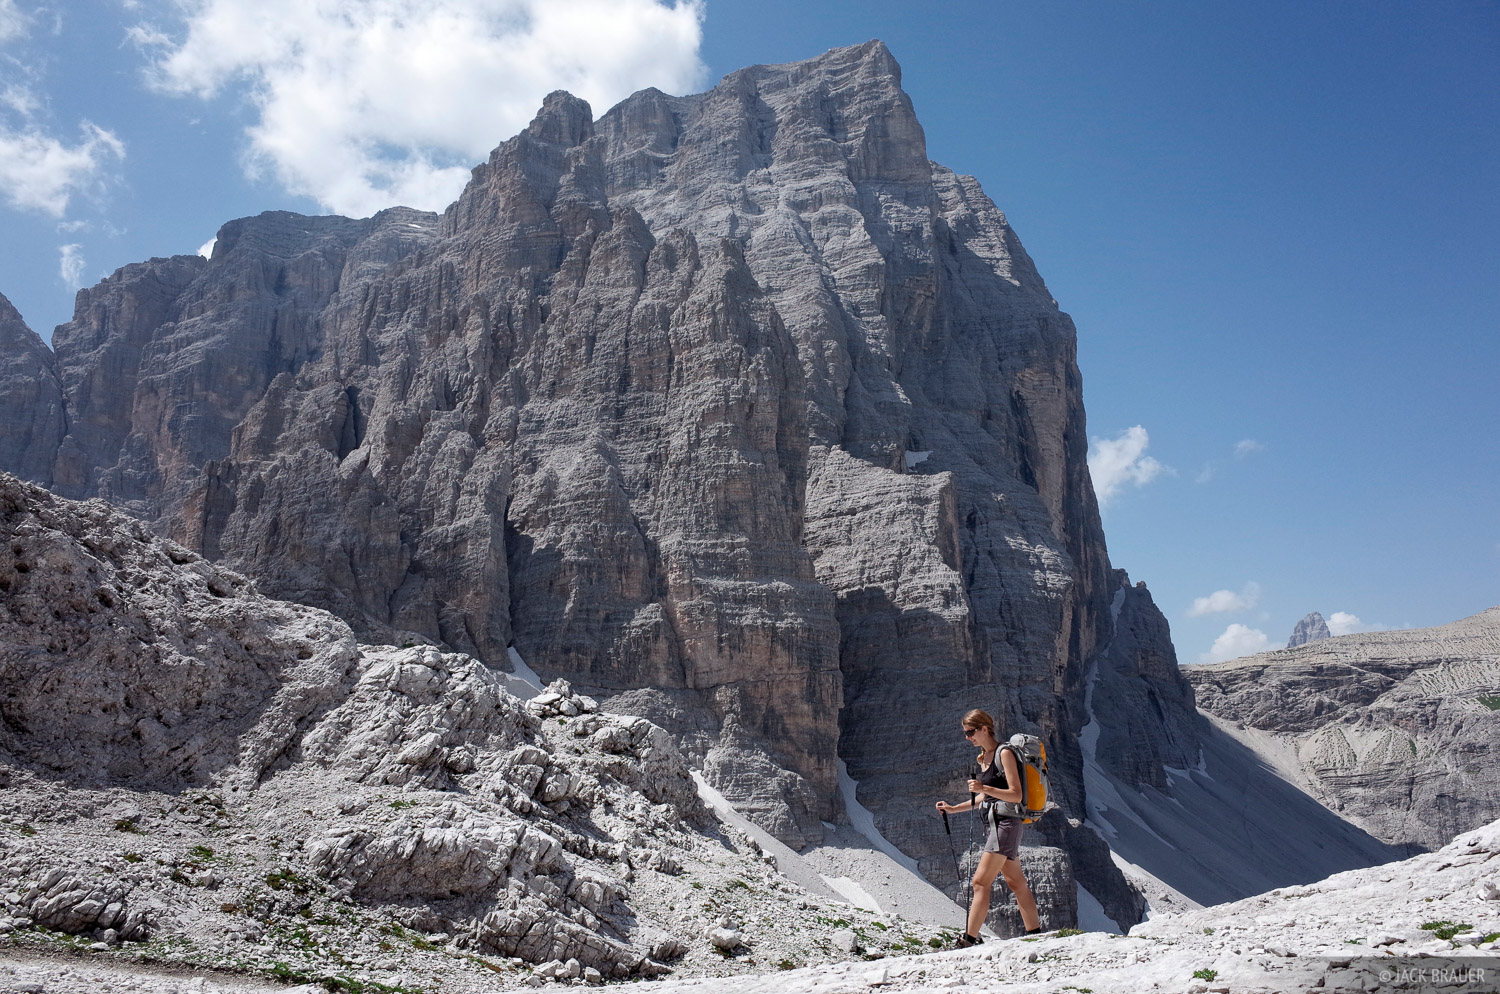 Dolomites, Europe, Italy, Zwolferkofel, hiking, photo